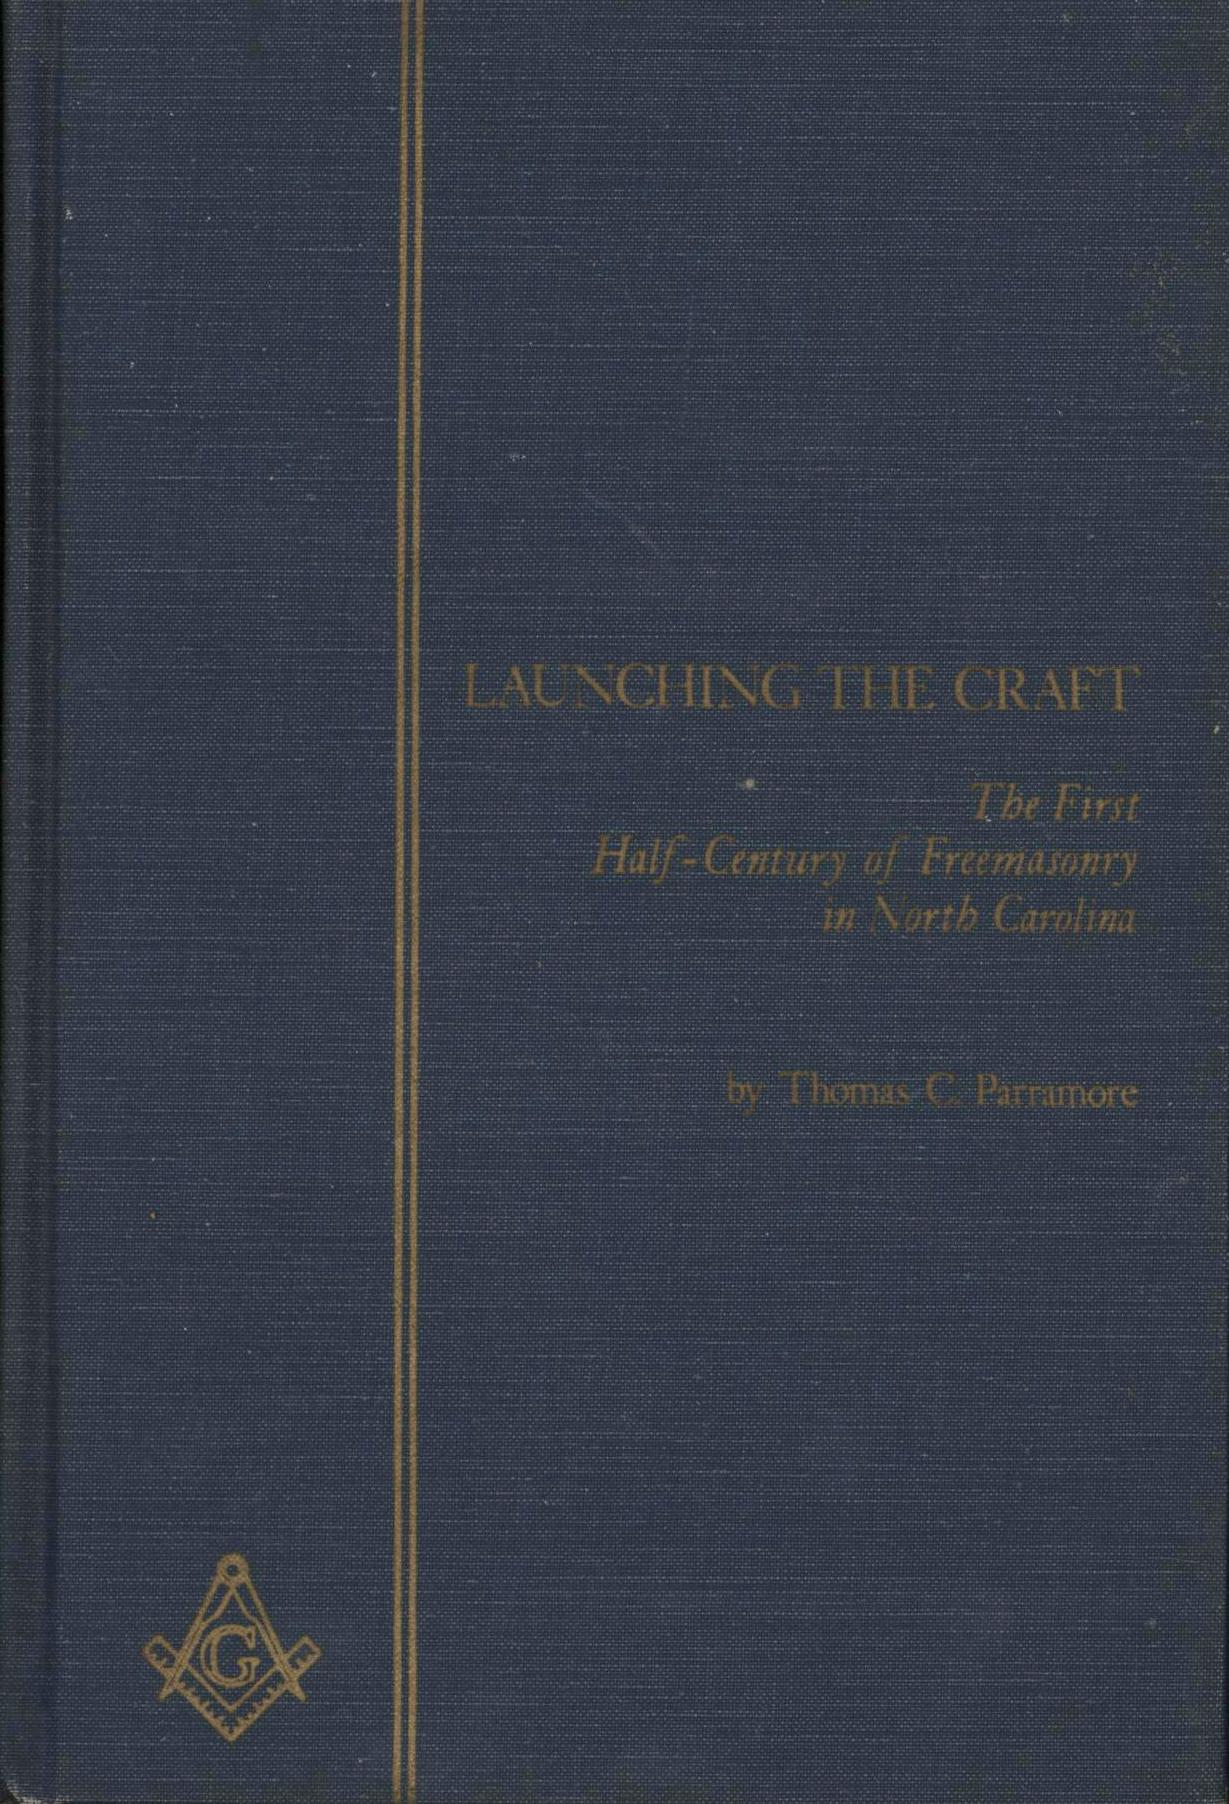 Image for Launching the Craft: The First Half-Century of Freemasonry in North Carolina (First Edition)